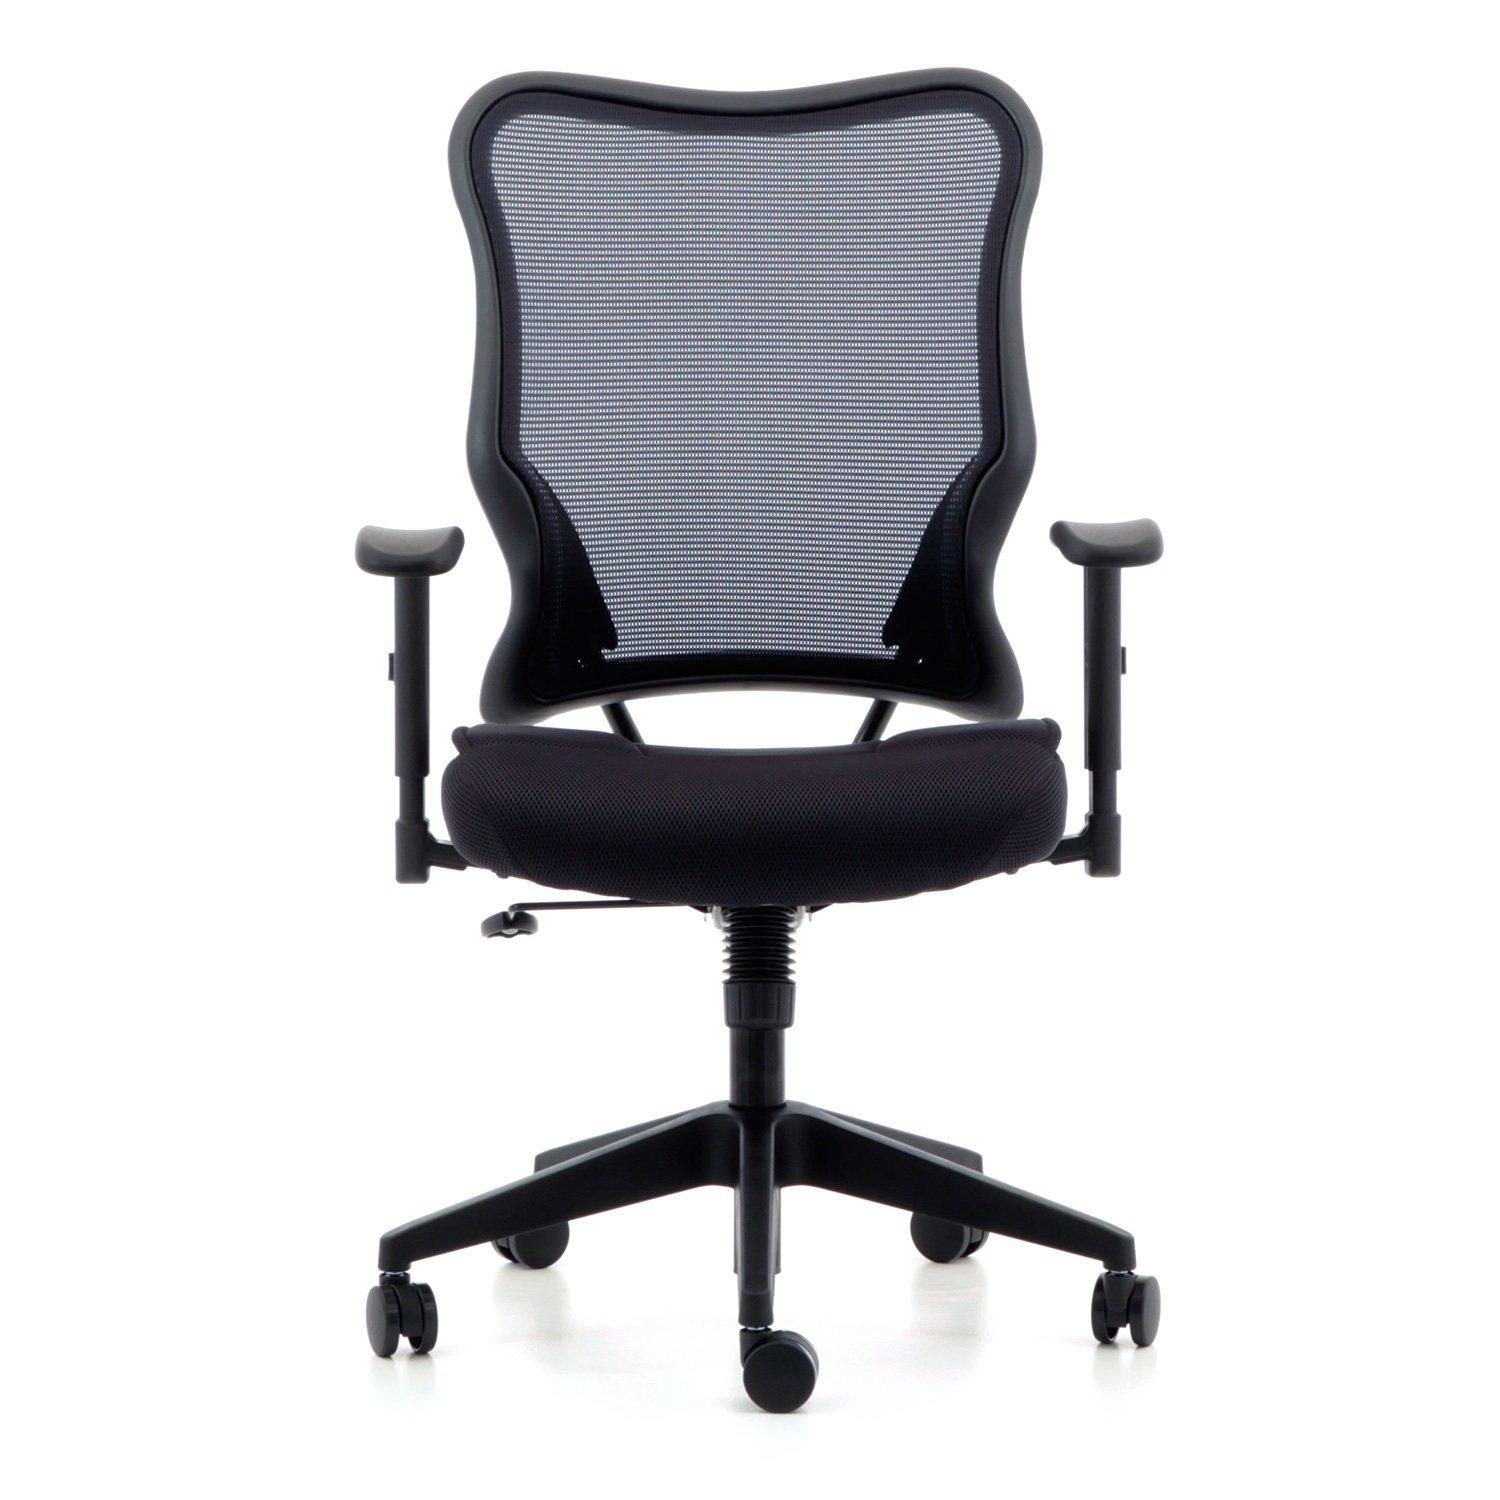 basyx by HON VL702 High Back Swivel Tilt Work Chair Black